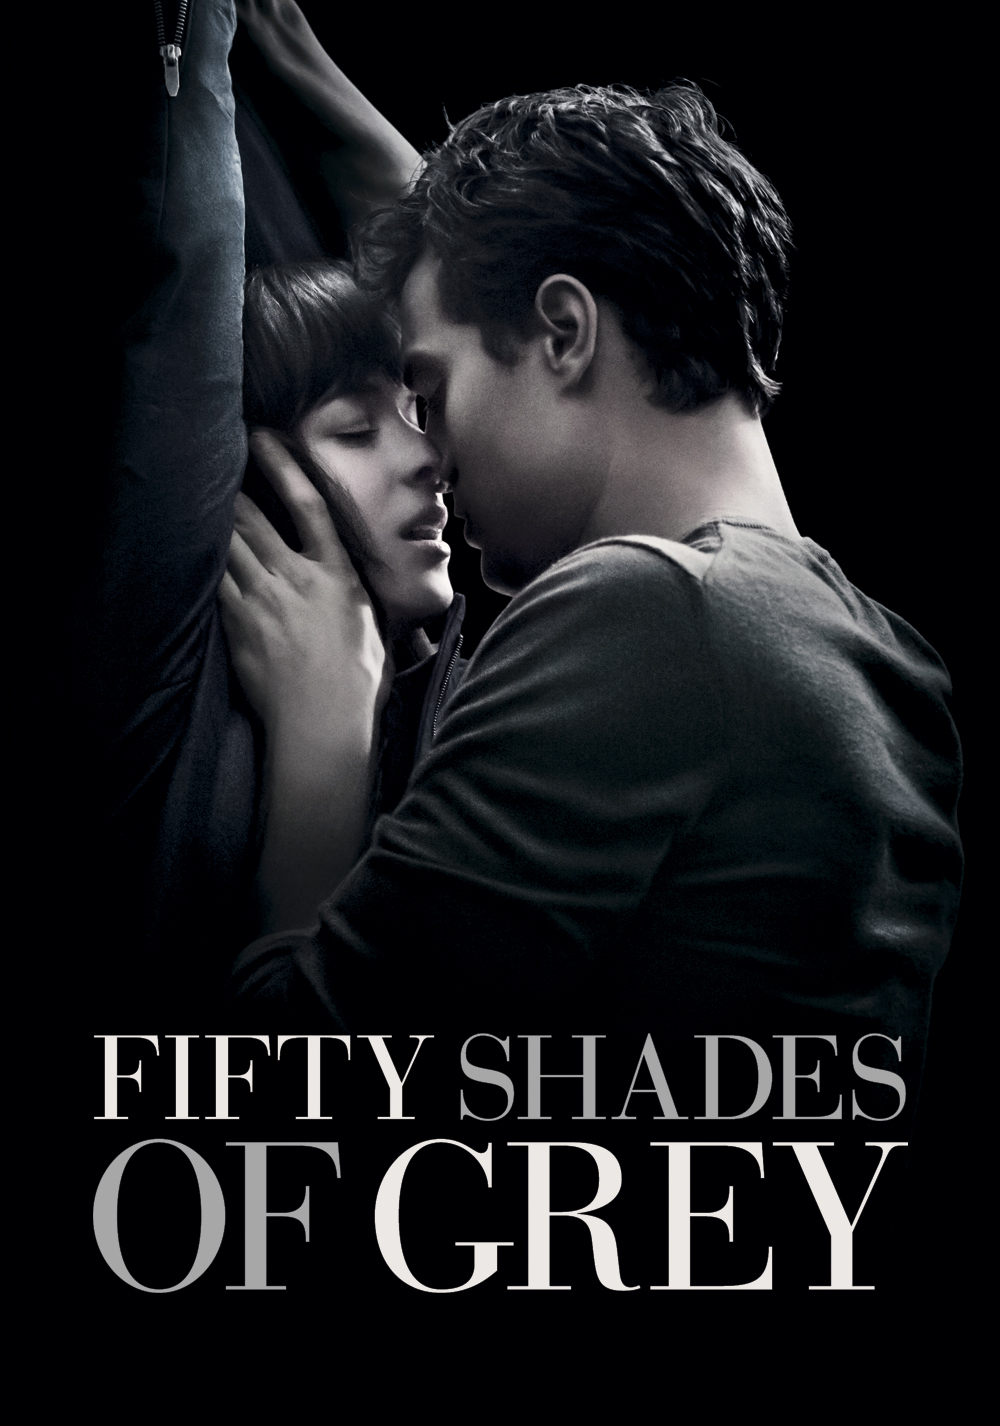 Fifty shades of grey wikipedia bahasa indonesia autos post for Second 50 shades of grey